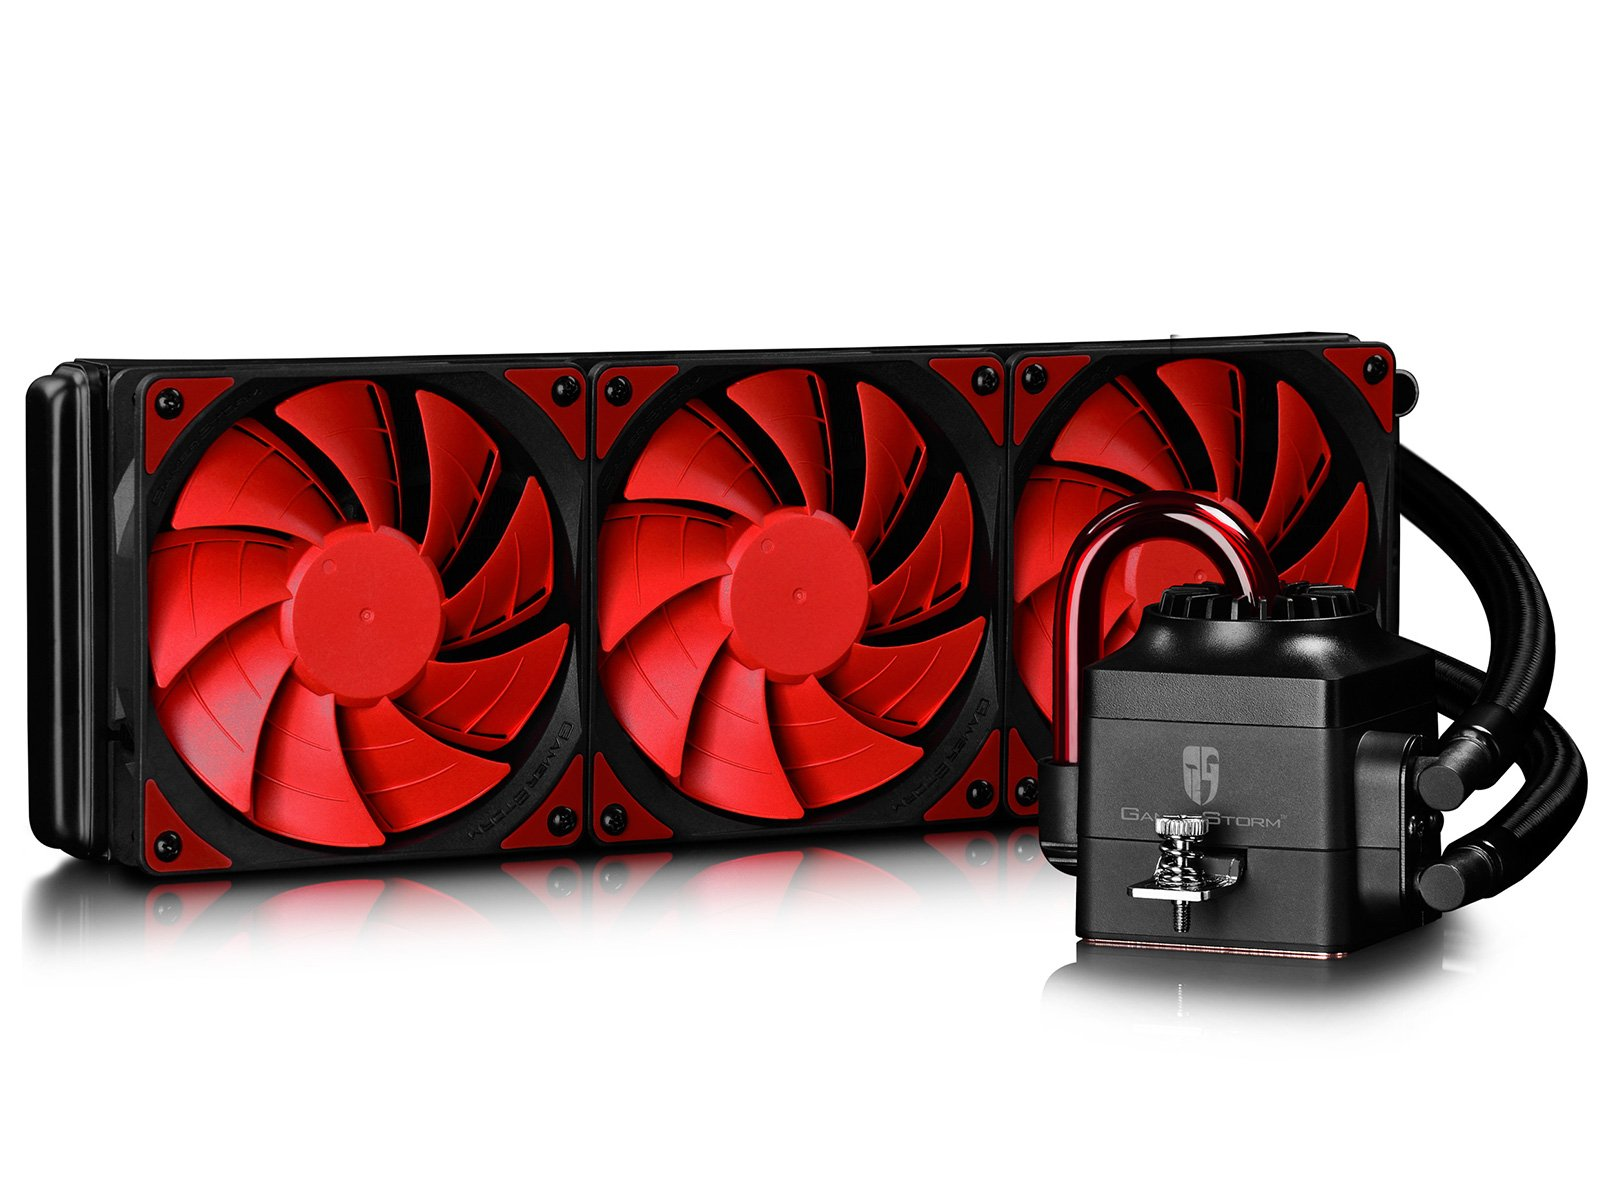 DEEPCOOL Gamer Storm CAPTAIN 360 Extreme Performance AIO Liquid CPU Cooling System (AM4 Compatible), Red, 3-year Warranty by DEEPCOOL